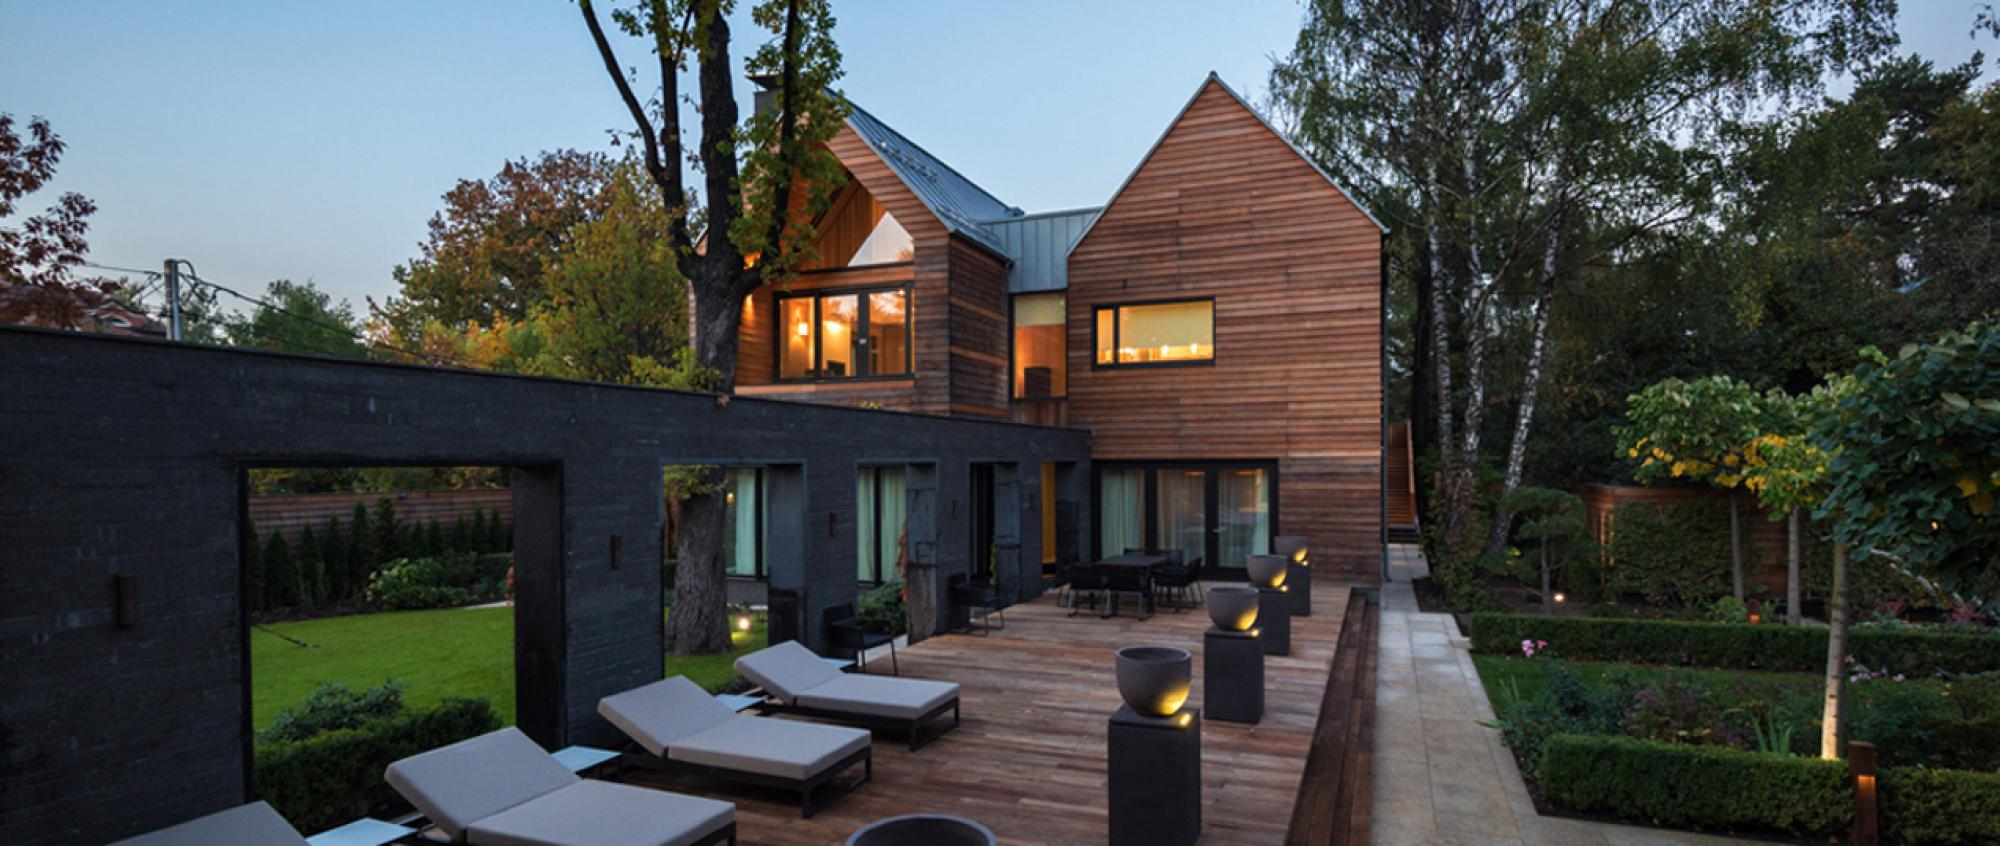 Private Summer House and Spa